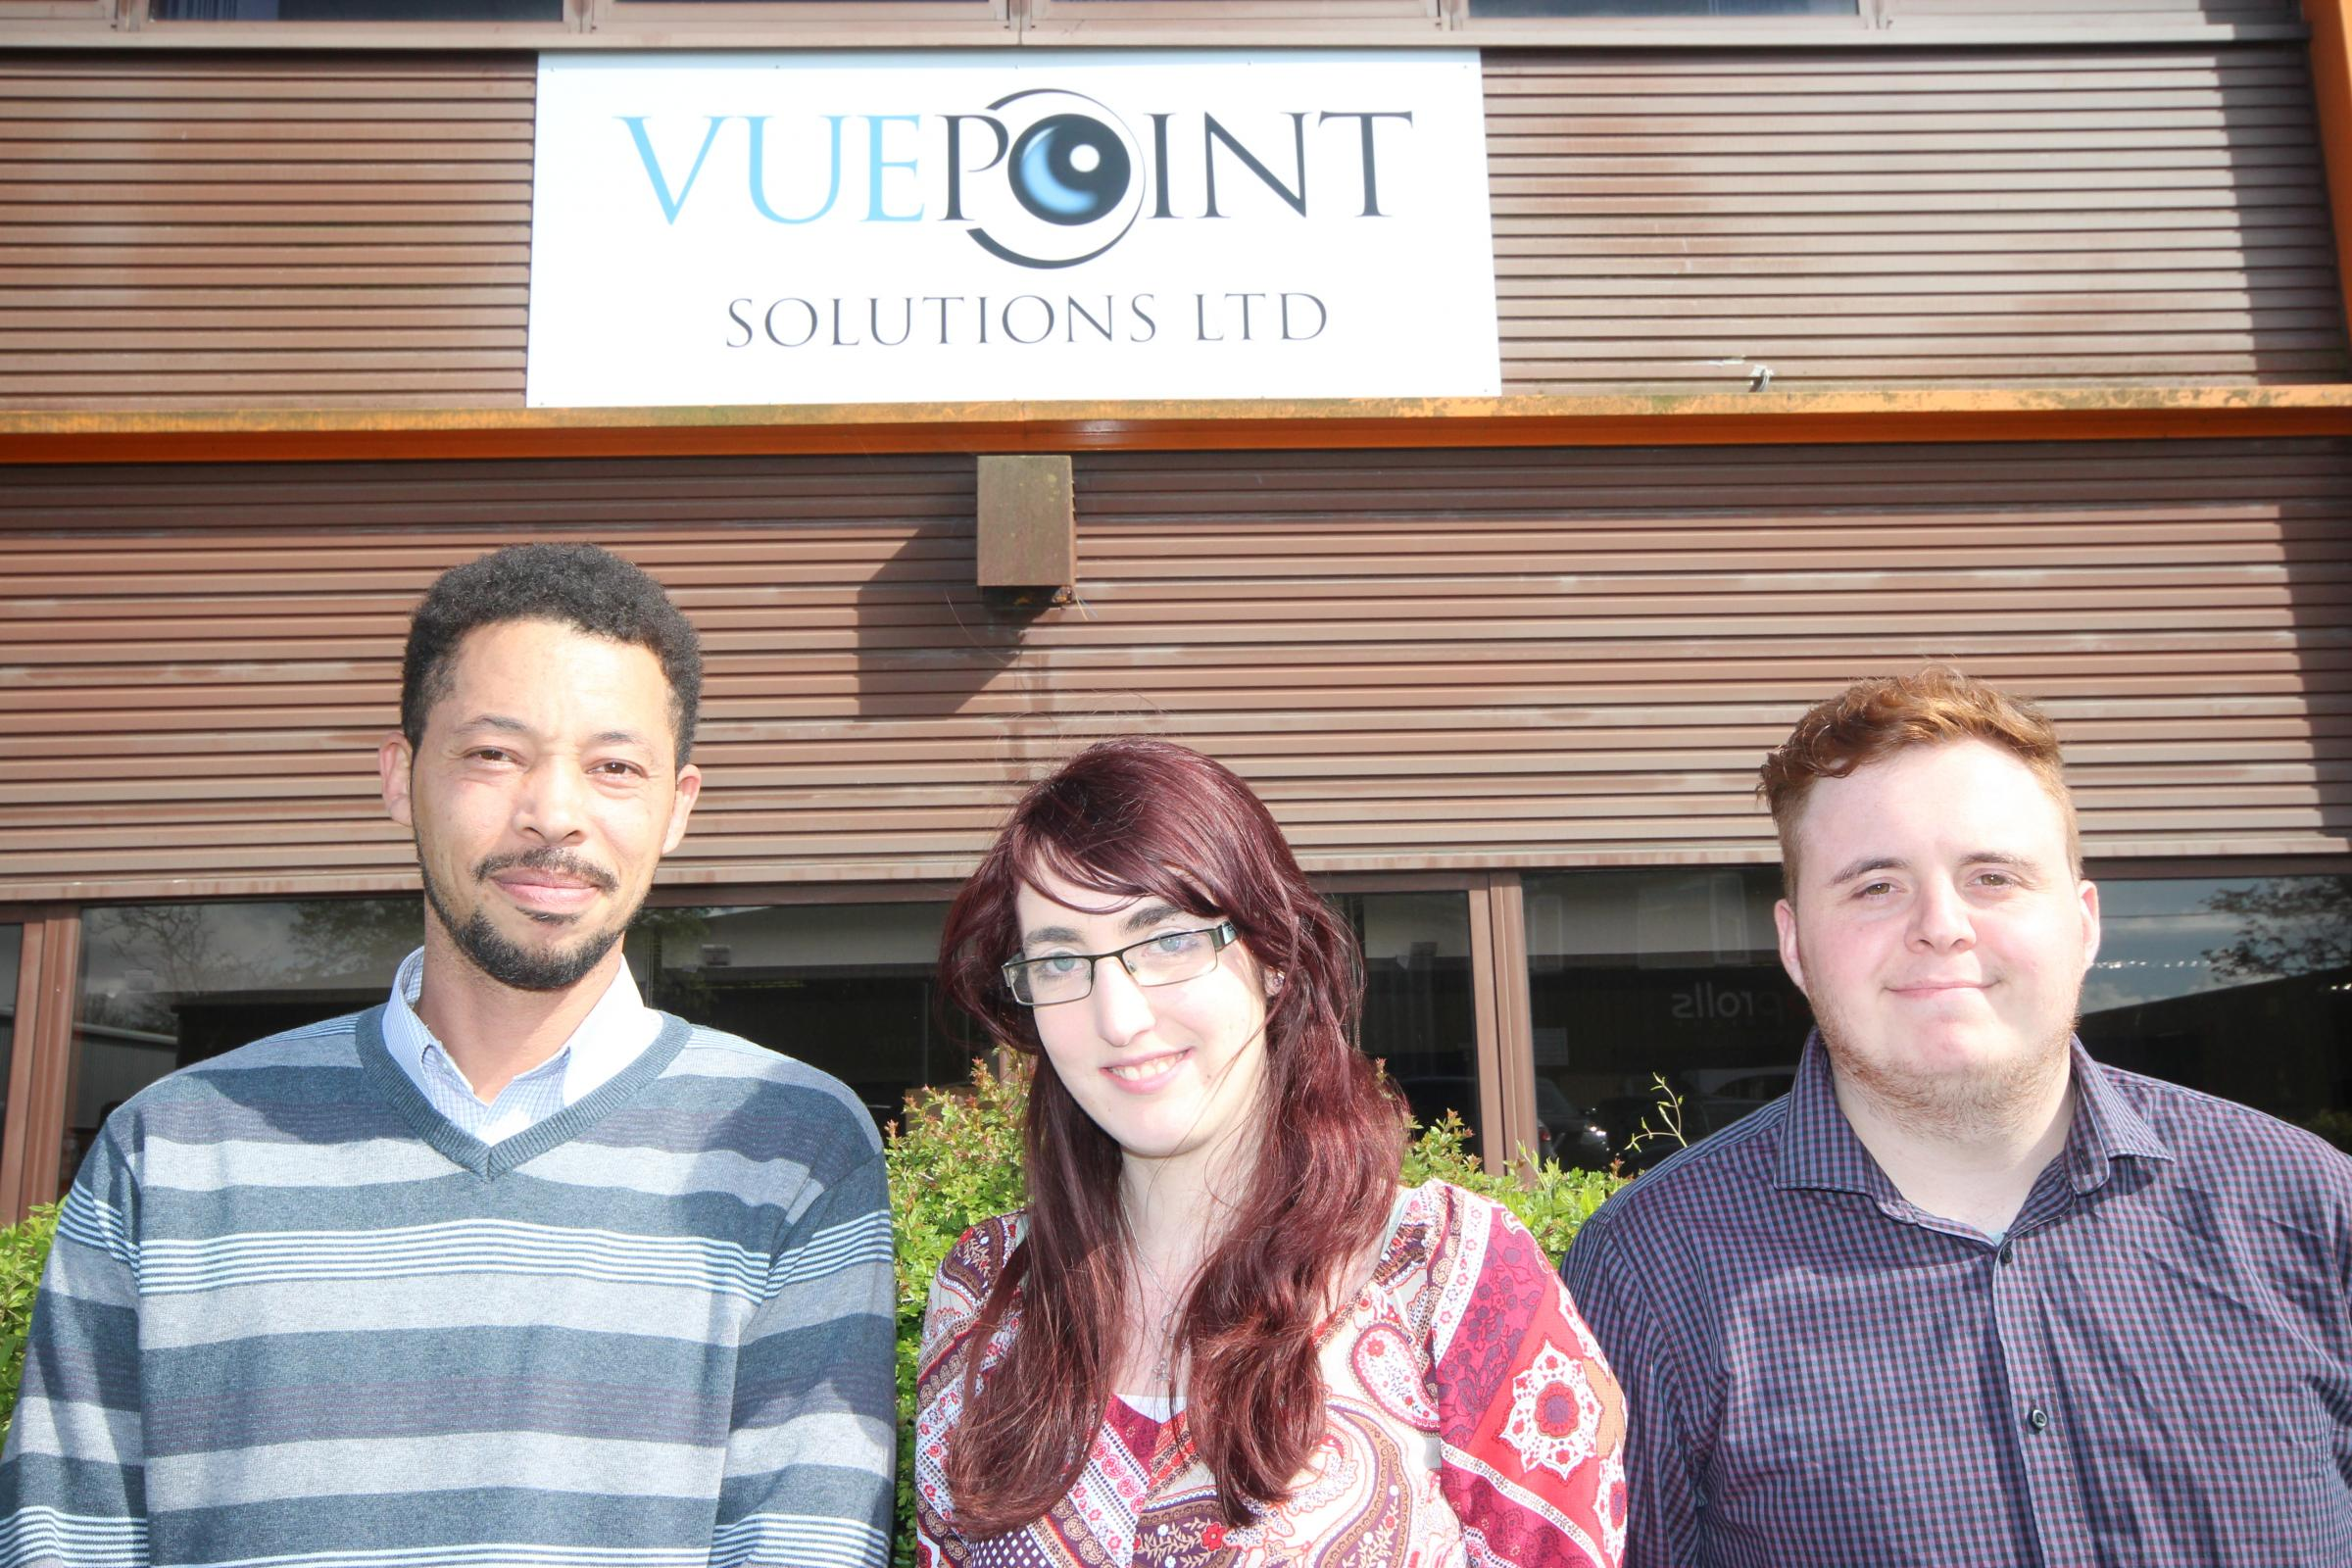 VuePoint Solutions apprentices James Rule, Sasha Geall and Anthony McKellop